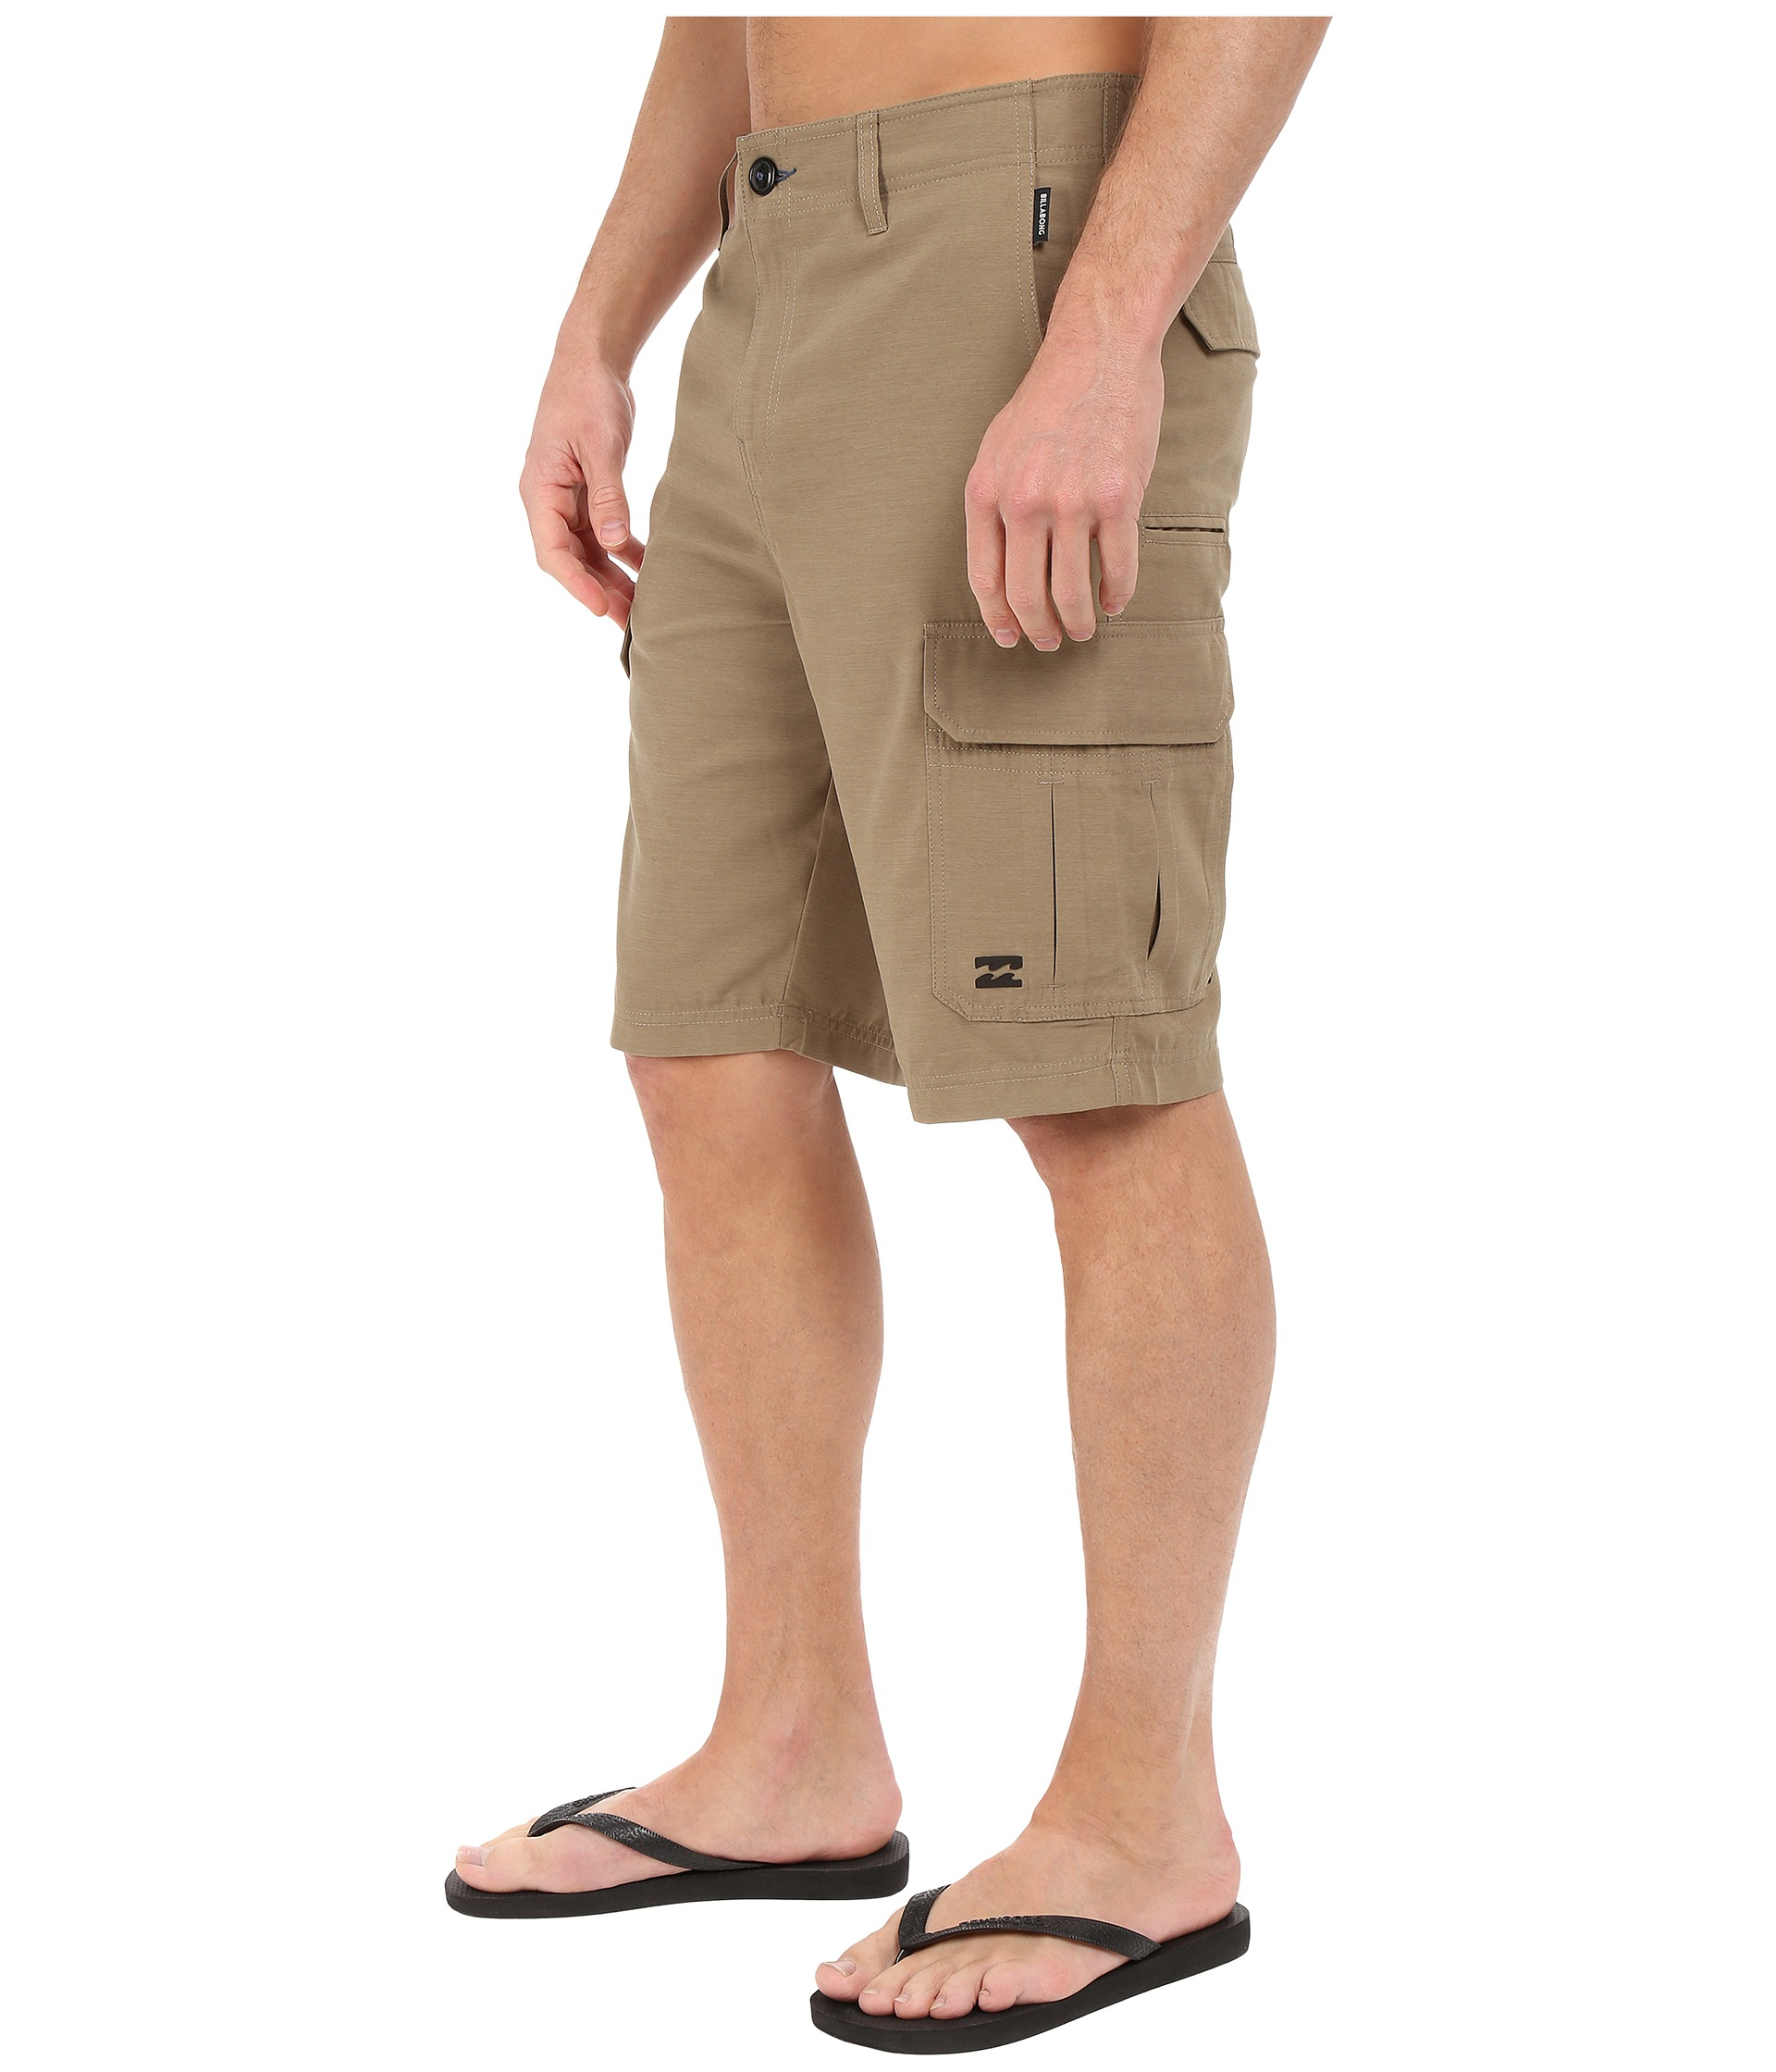 ab2f6a5ab0 Billabong Scheme Cargo Submersible Shorts for Men - Lyst